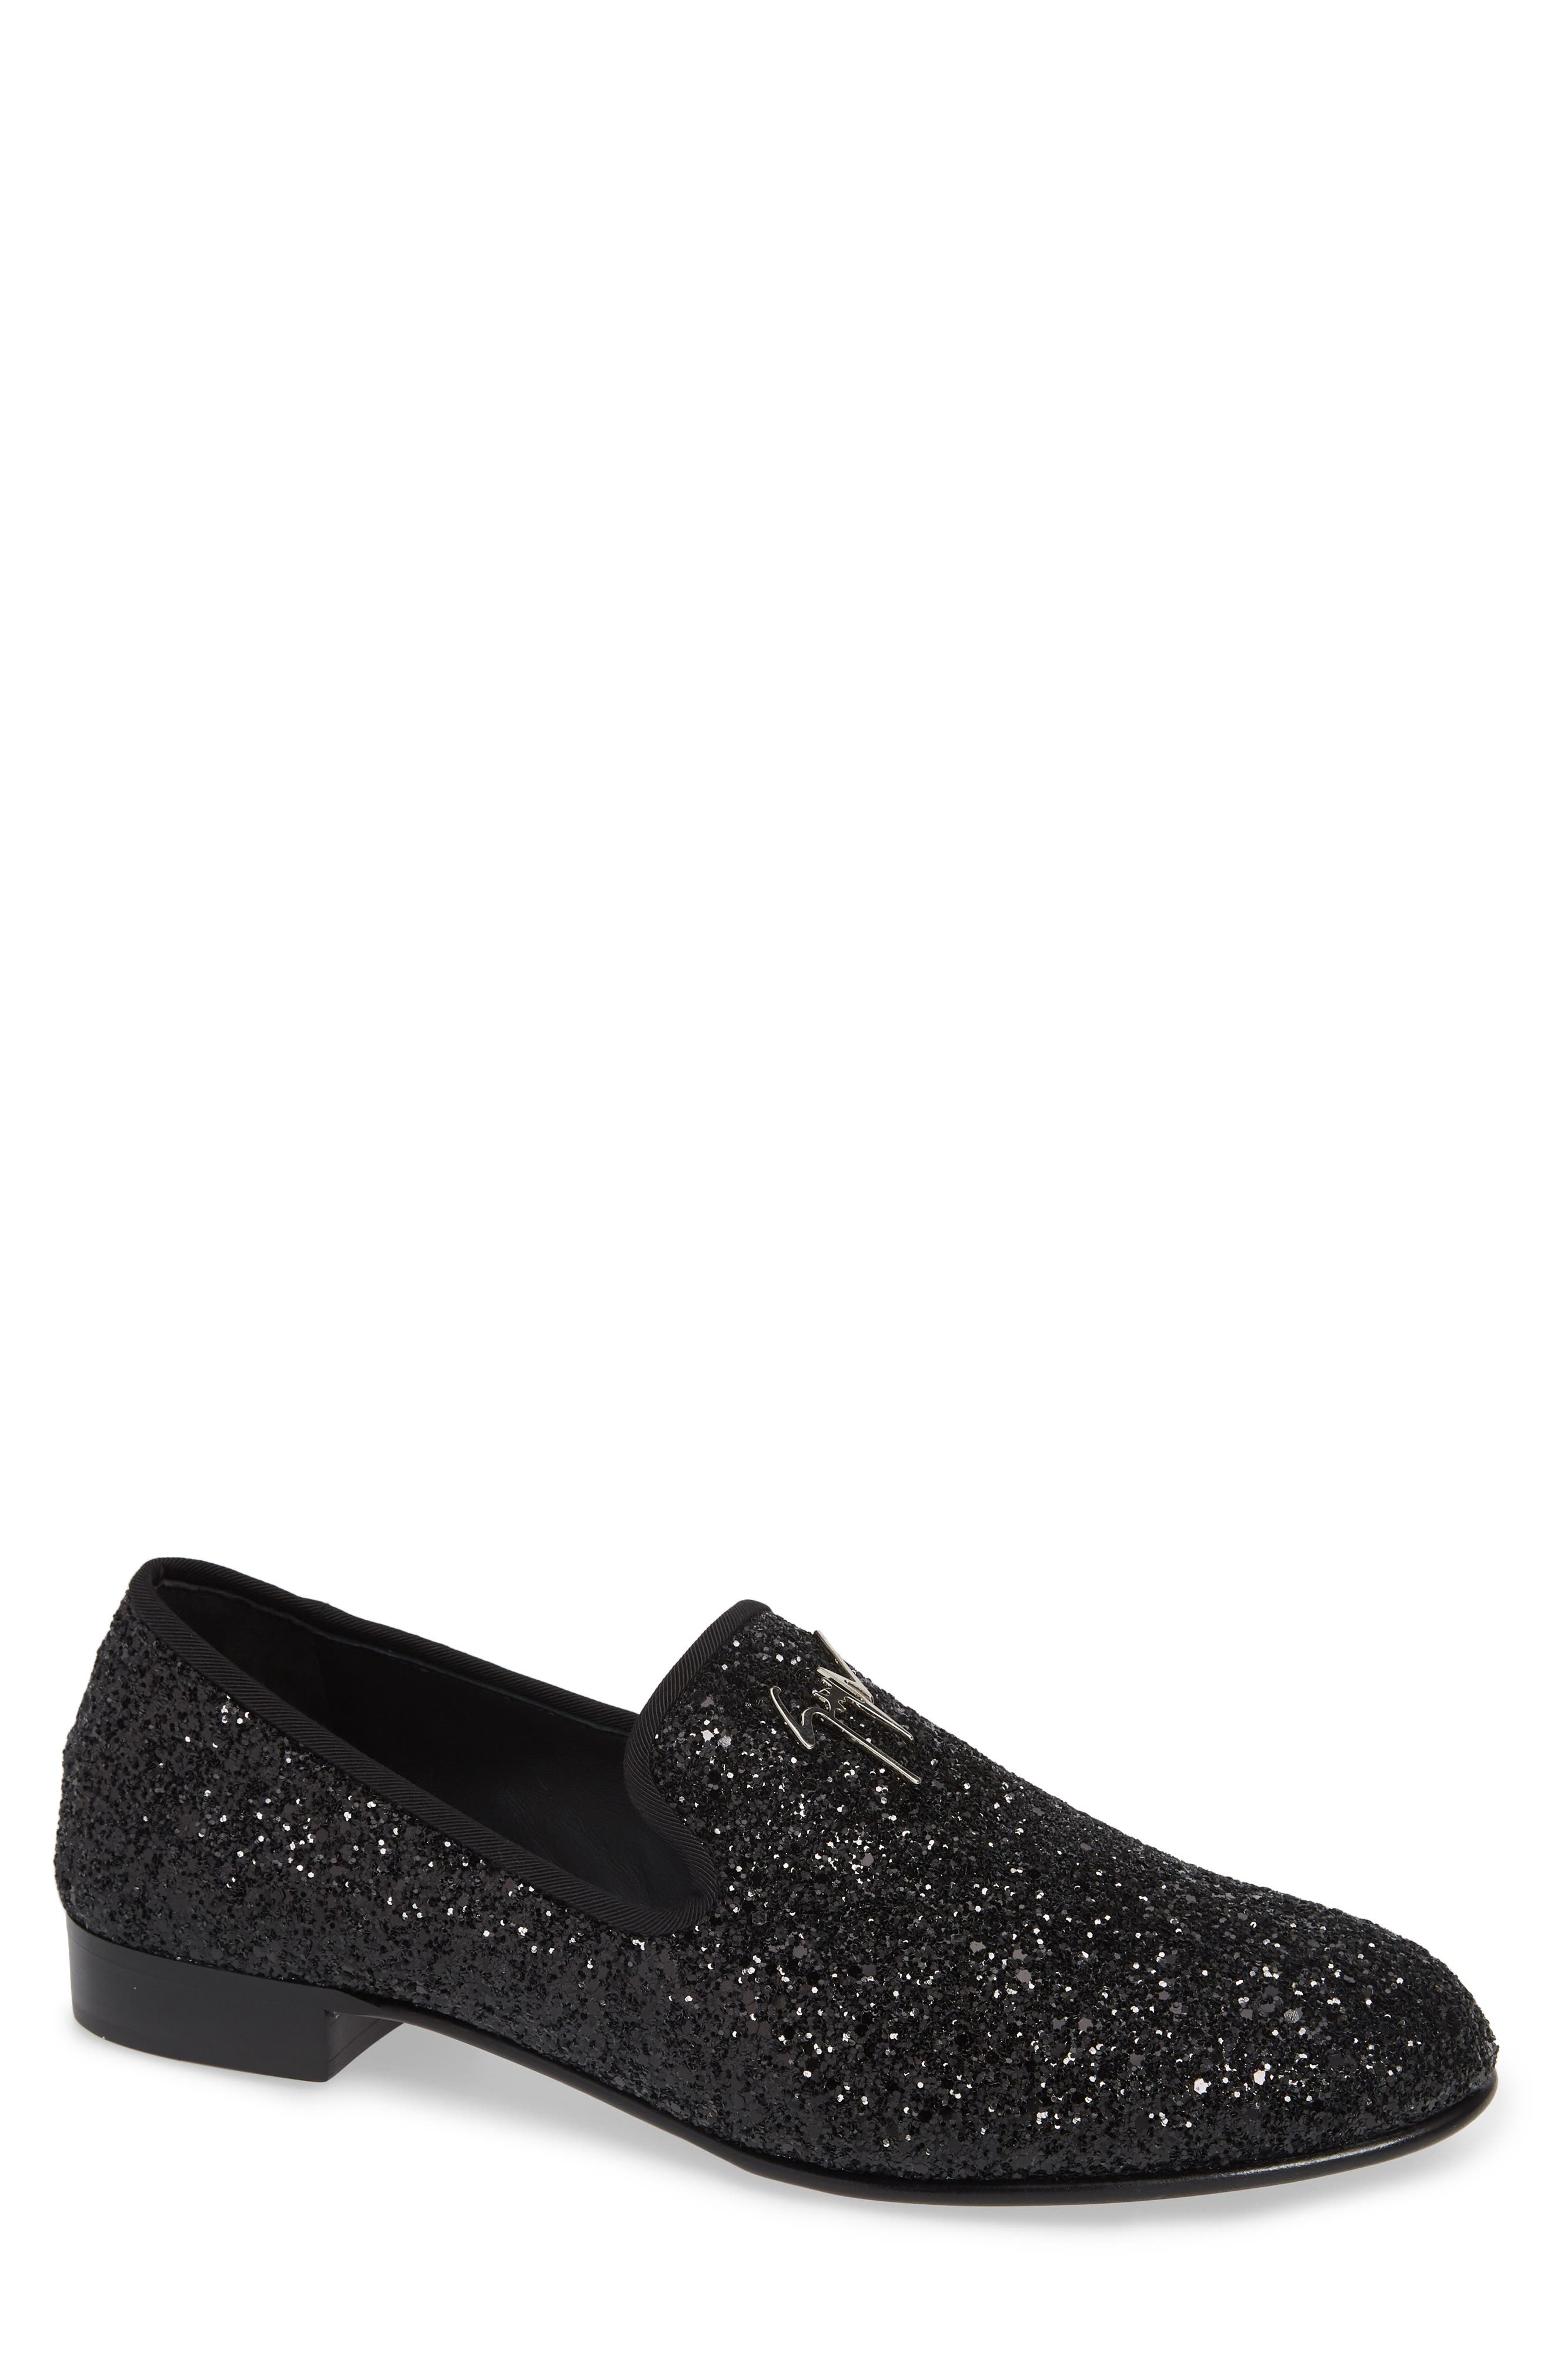 GIUSEPPE ZANOTTI, Glitter Encrusted Smoking Slipper, Main thumbnail 1, color, BLACK